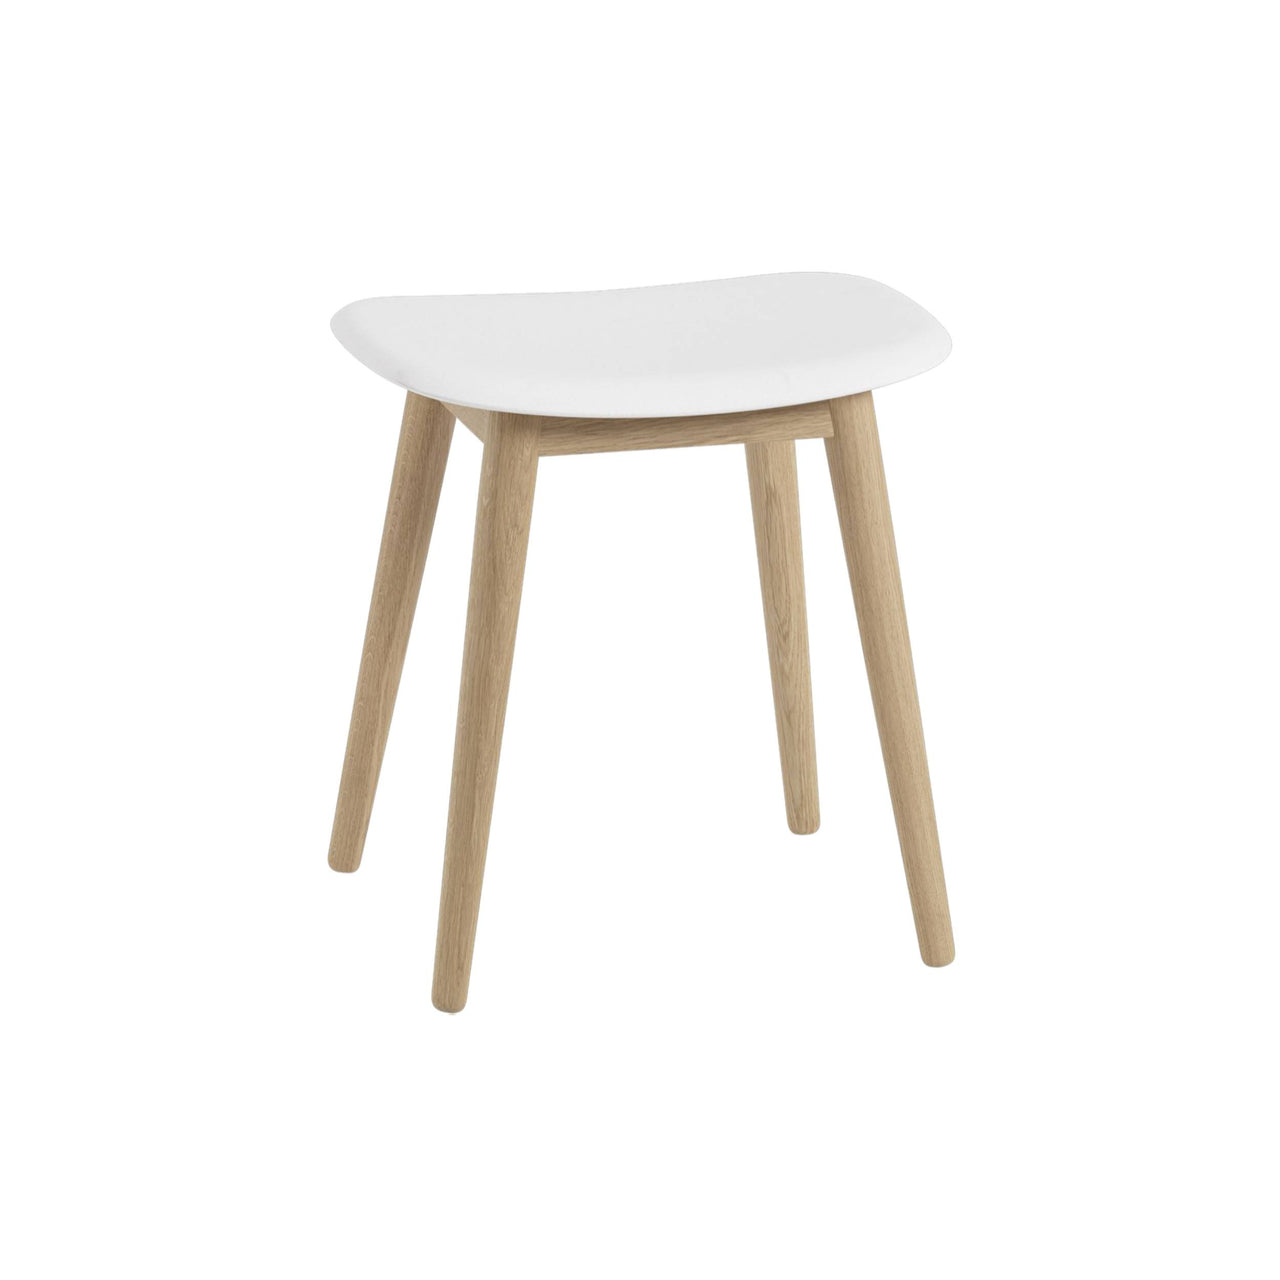 Fiber Stool: Wood Base Upholstered